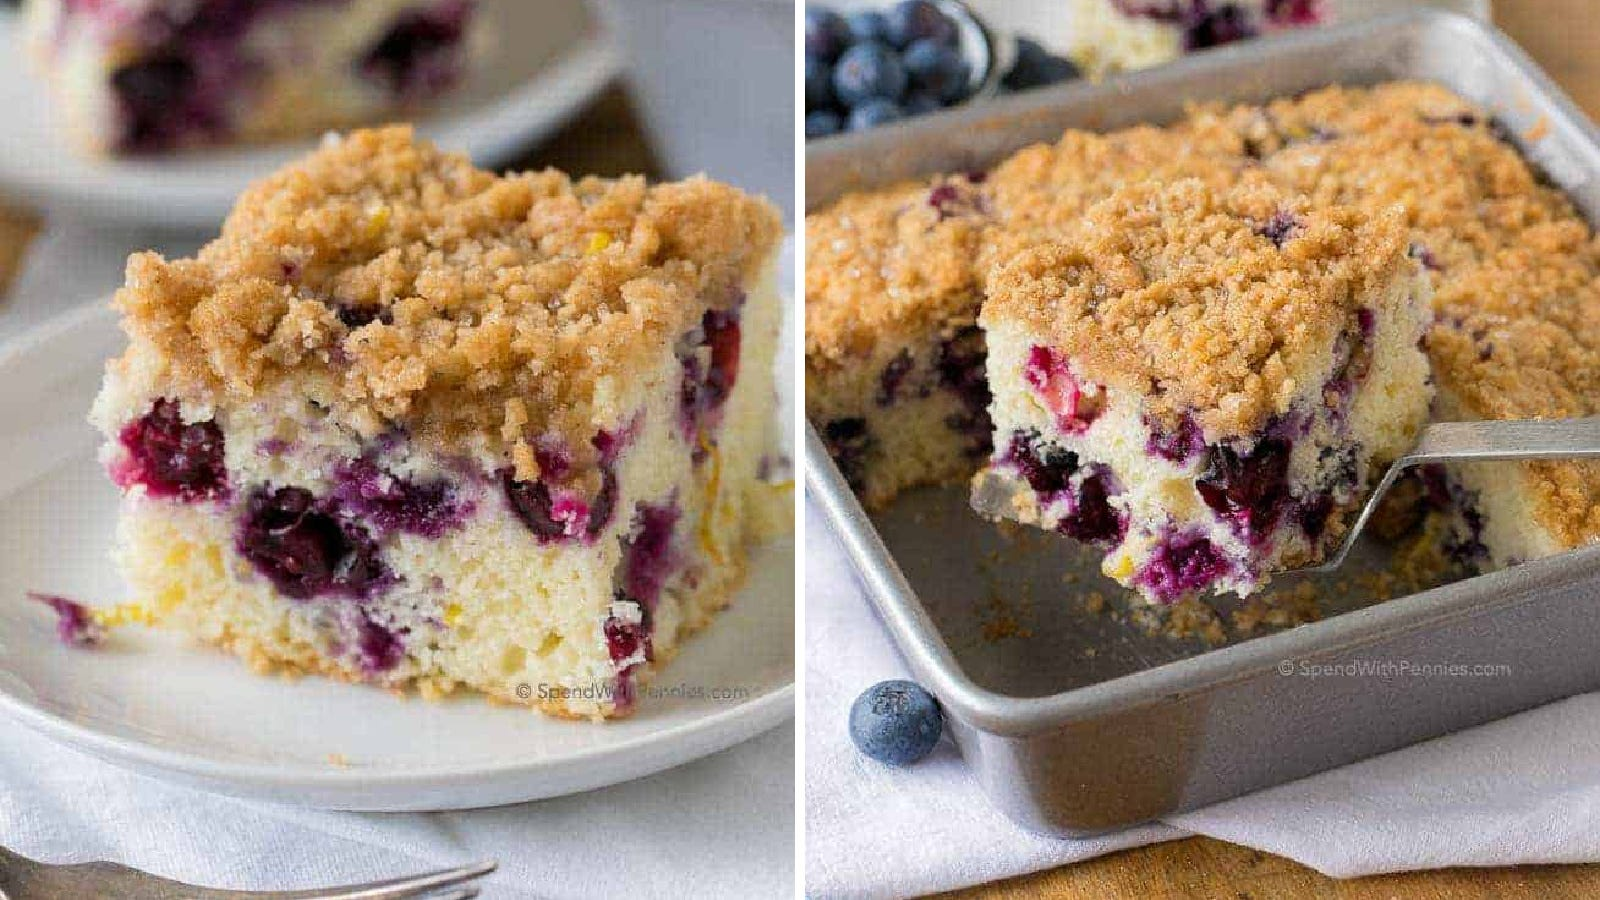 Two images of blueberry buckle, topped with streusel. The left image is of buckle on a white plate, and the right image is of a piece of buckle being removed from a baking pan.